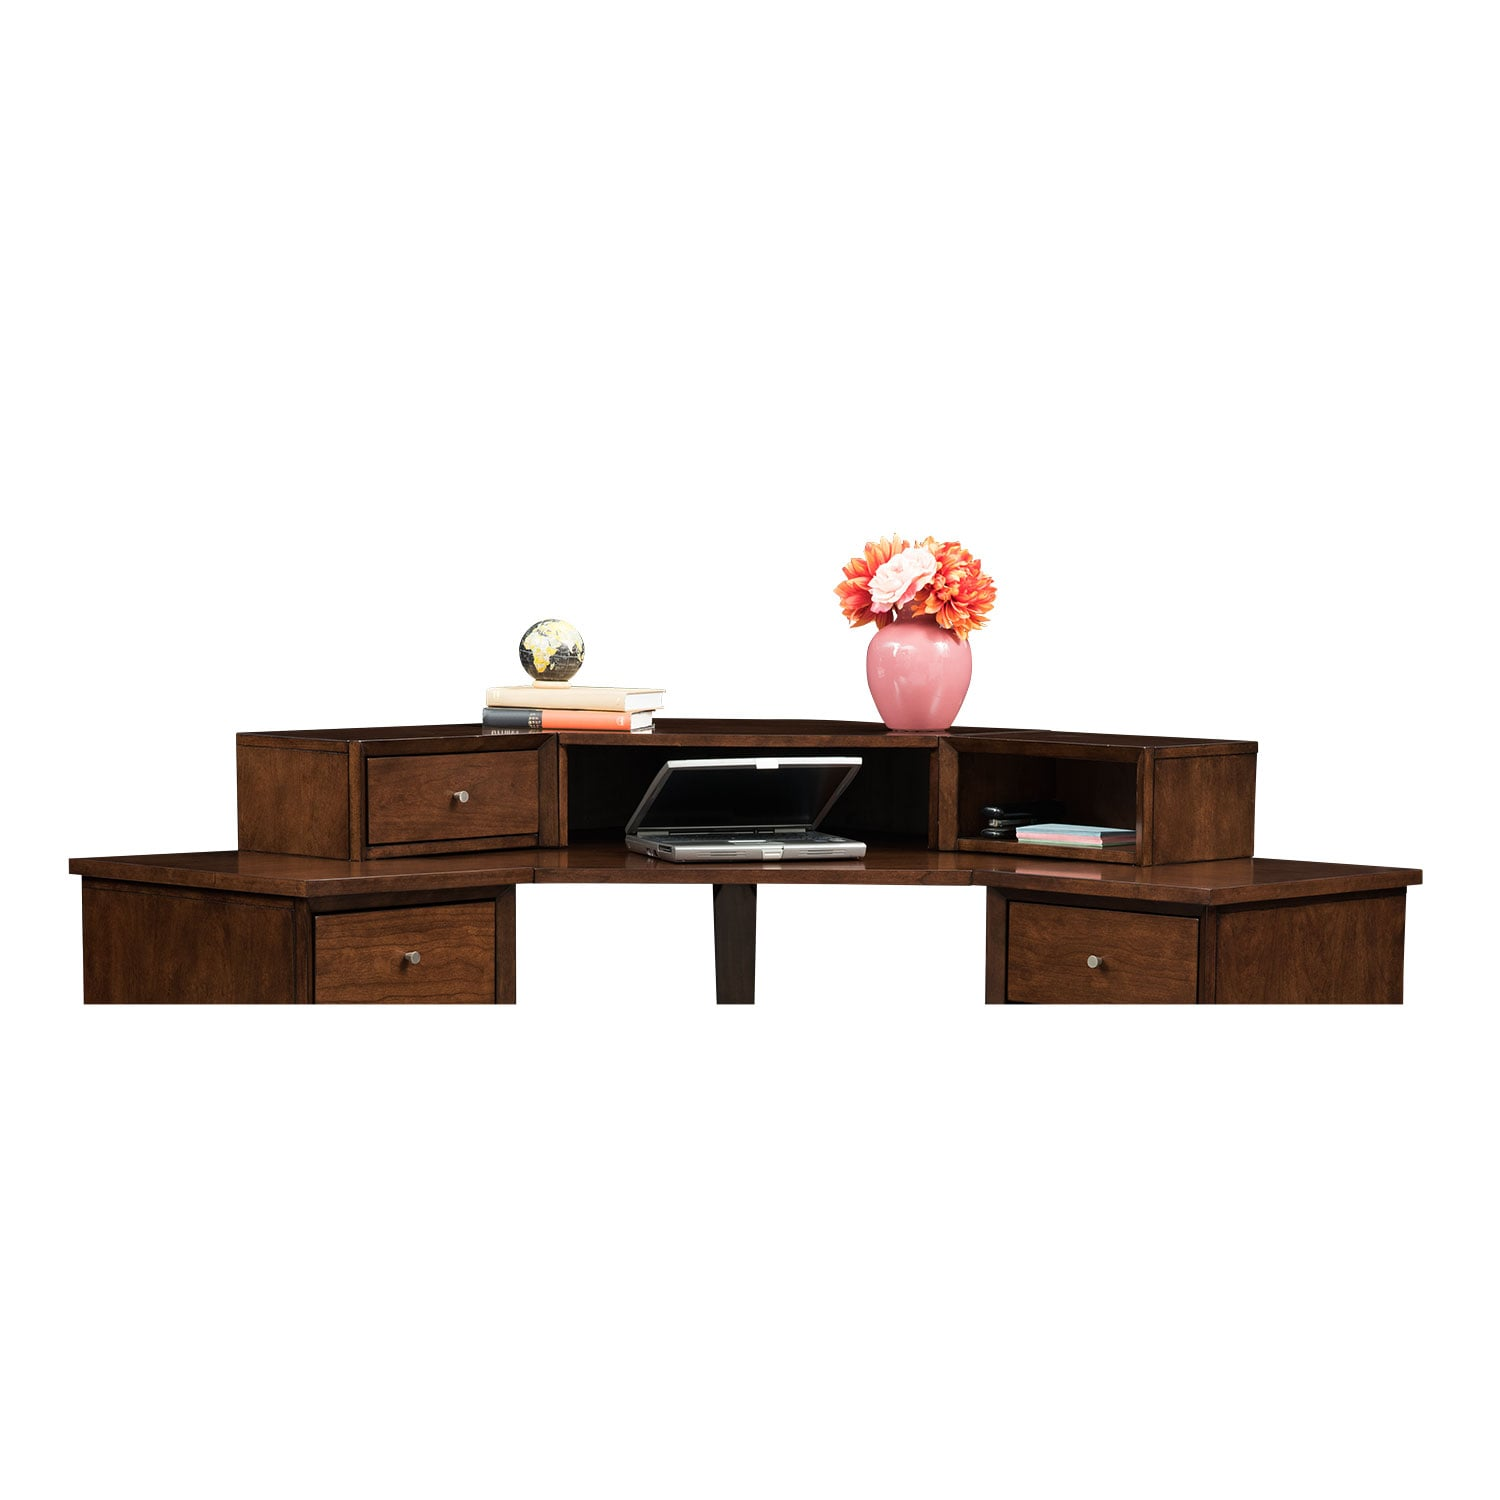 Oslo Cherry Corner Hutch